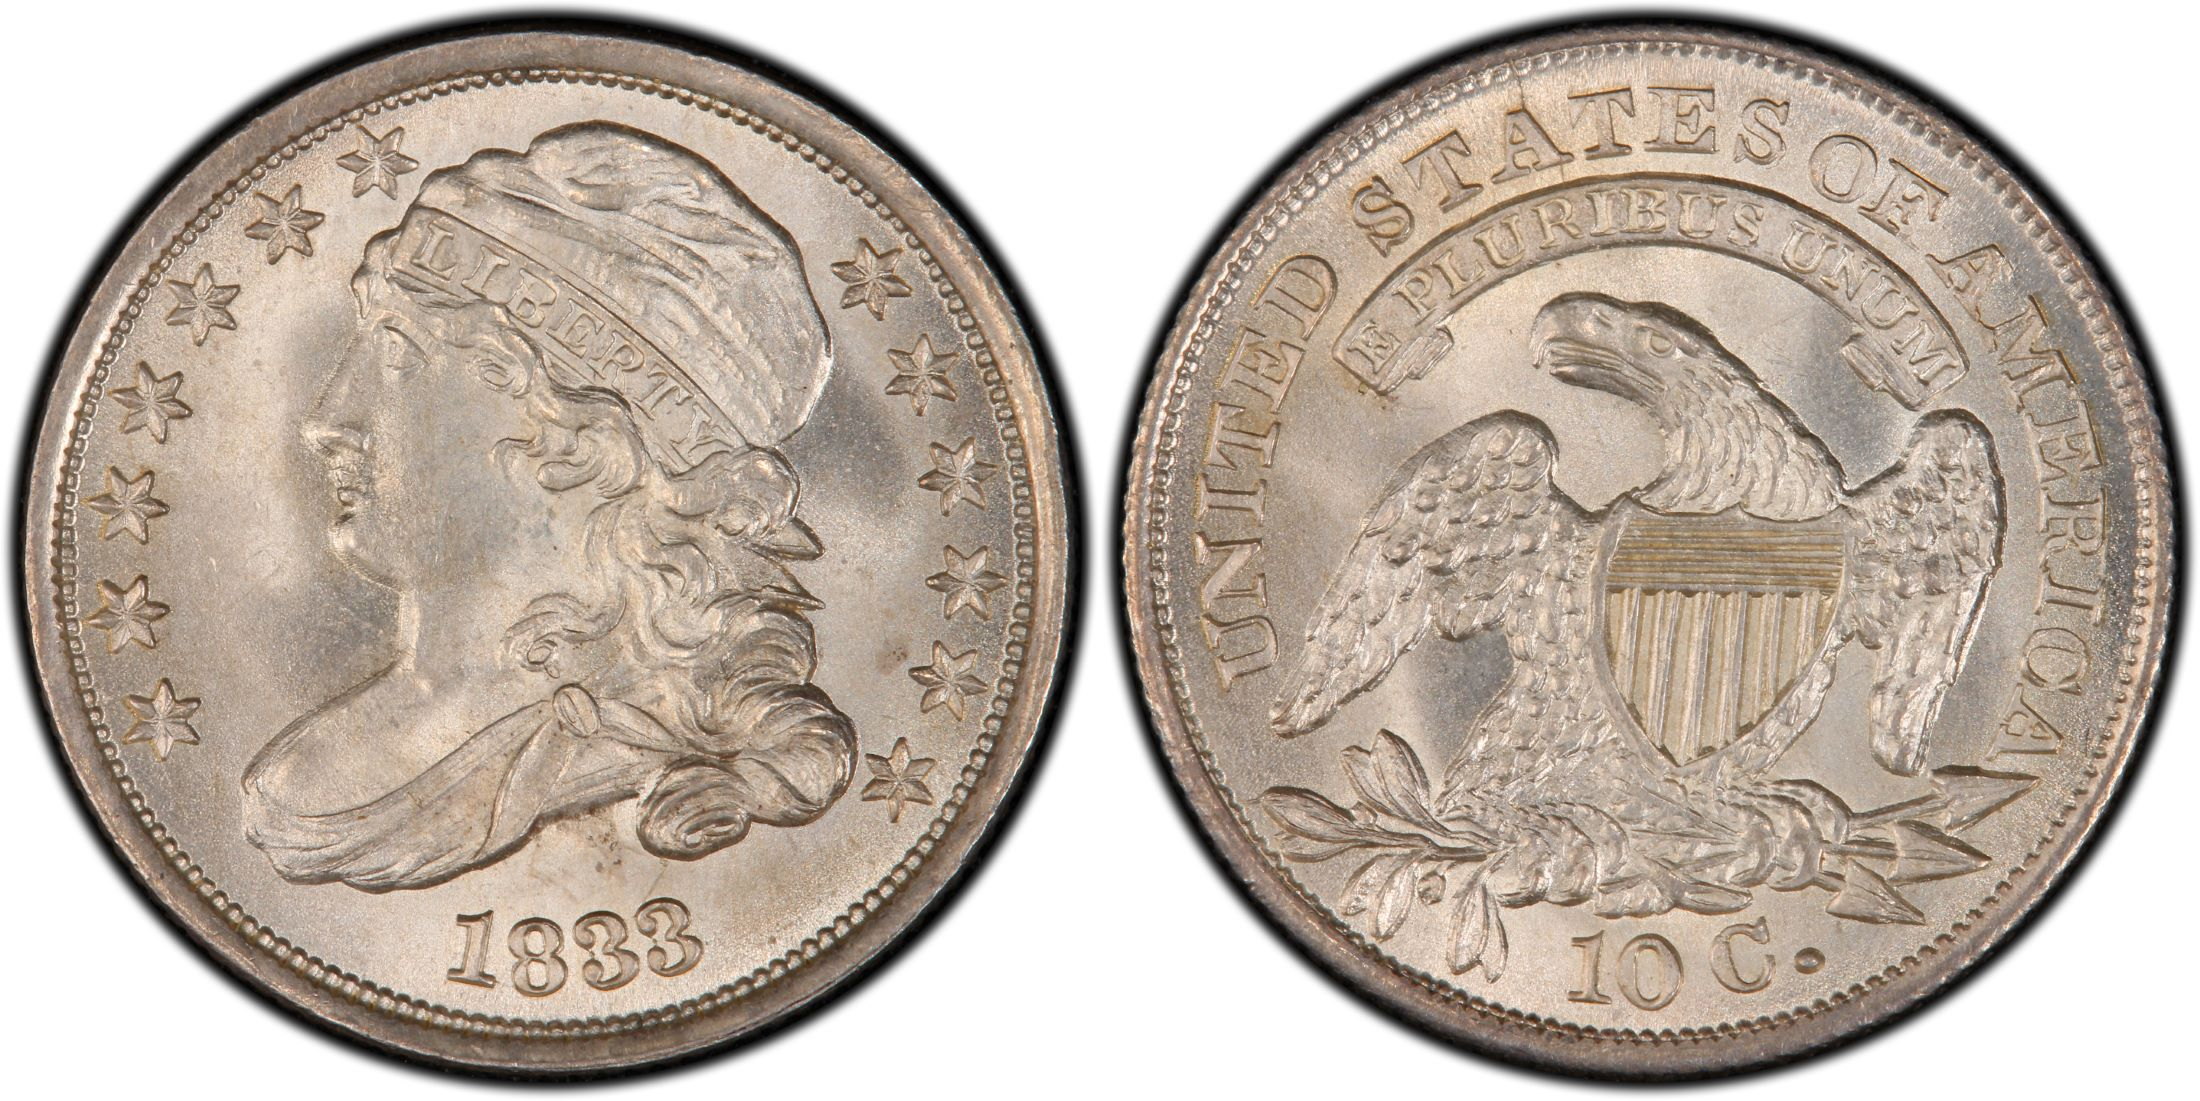 1833 10c Regular Strike Pcgs Coinfacts